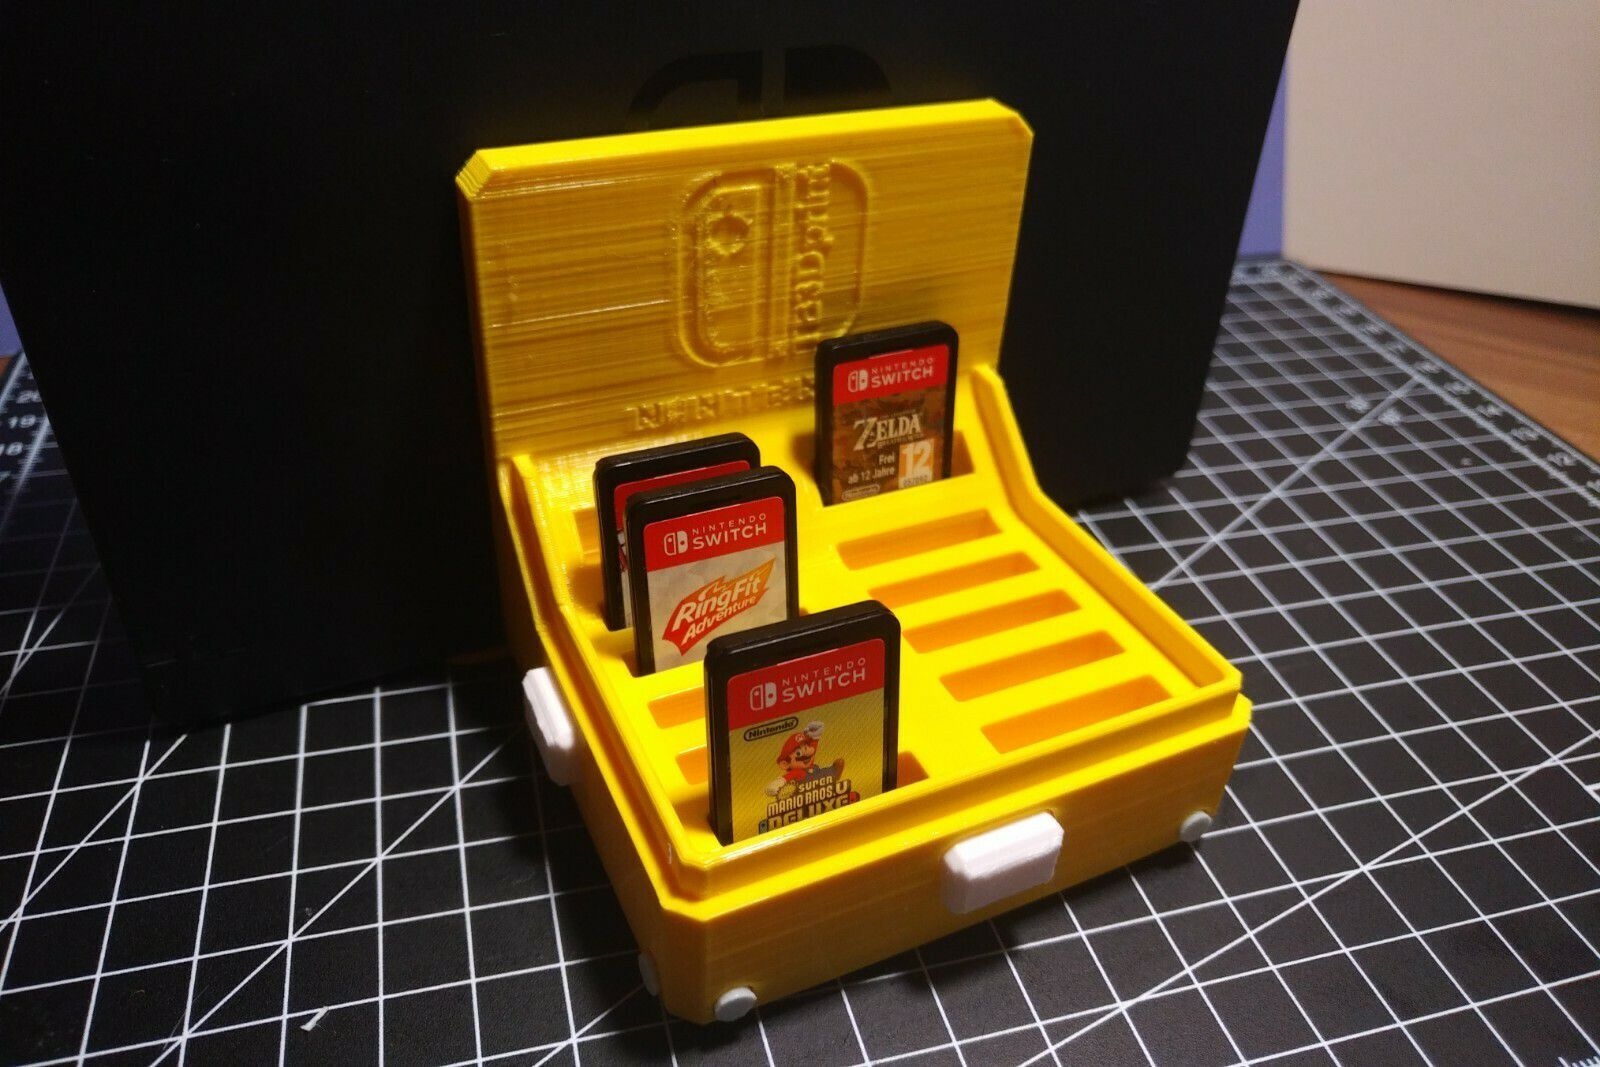 IMG_20210203_1728188.jpg Télécharger fichier STL Nintendo Switch Game Card Storage • Plan imprimable en 3D, TimBauer-TB3Dprint